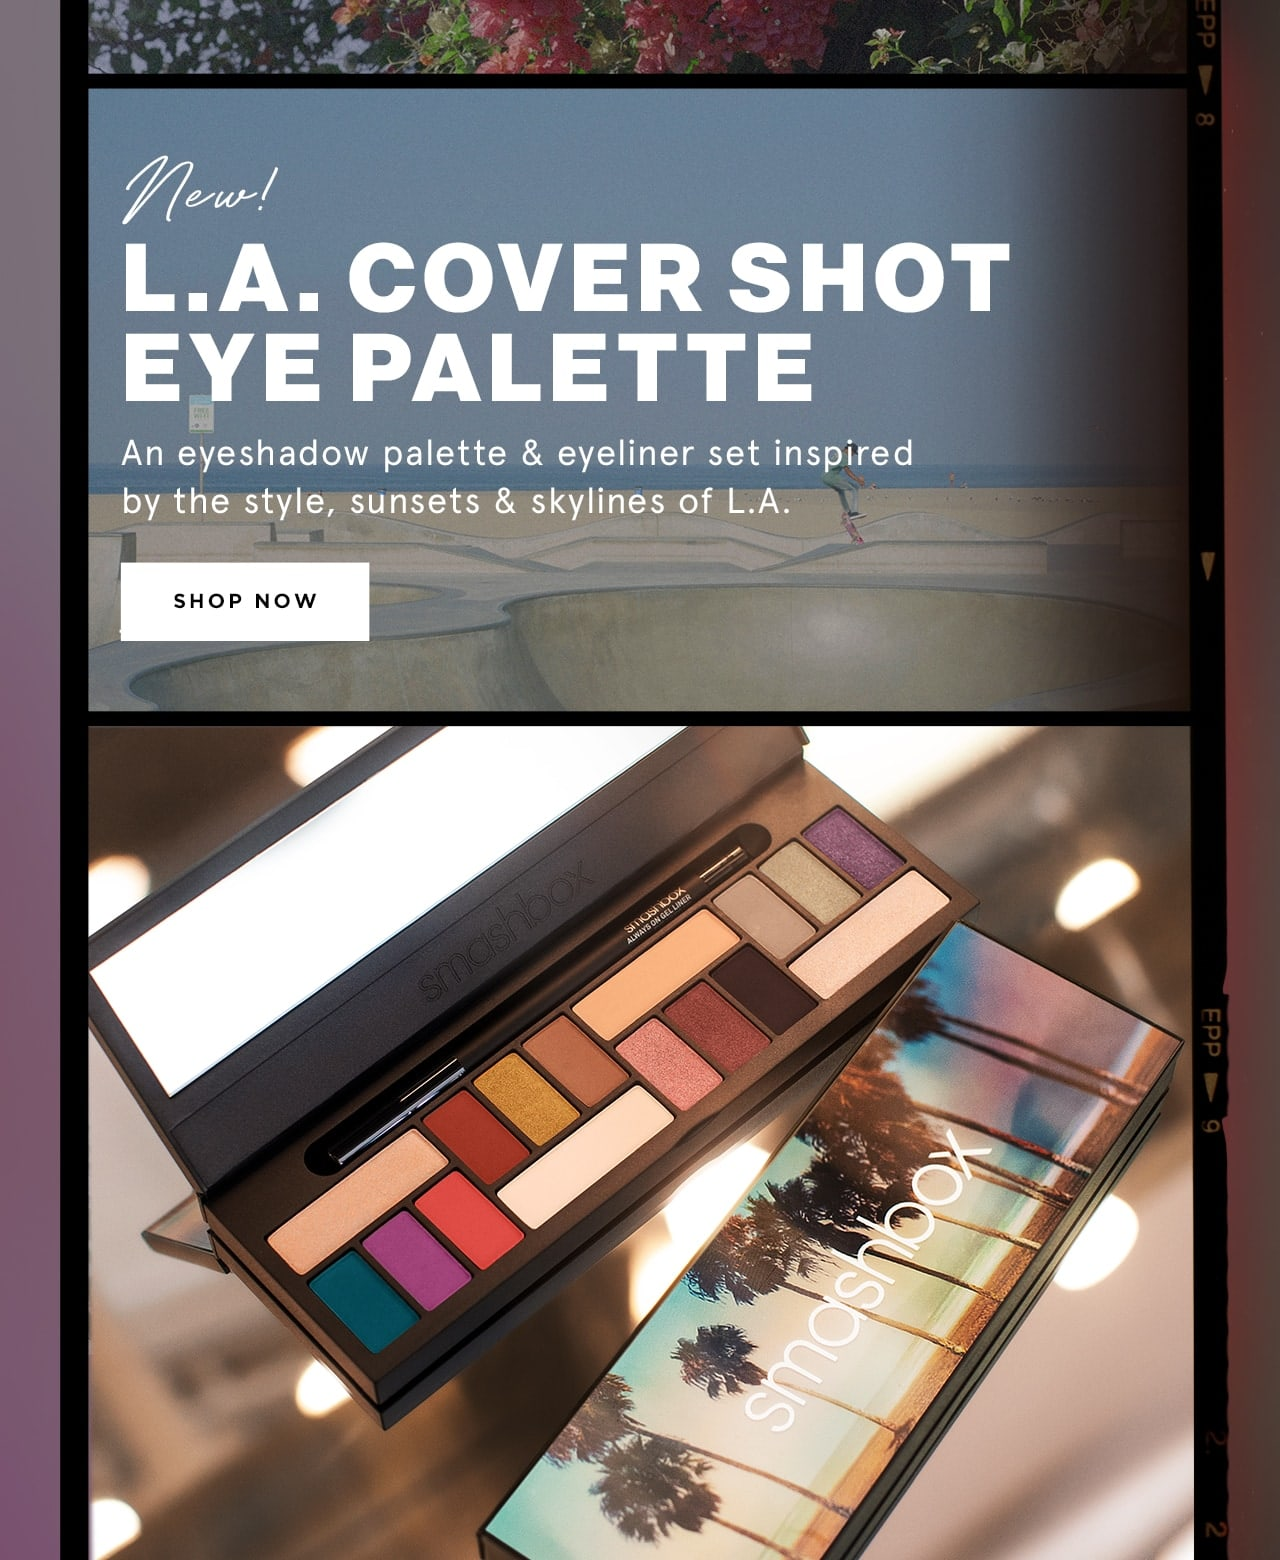 L.A. Cover shot eye palette. An eyeshadow palette and eyeliner set inspired by the style of L.A.